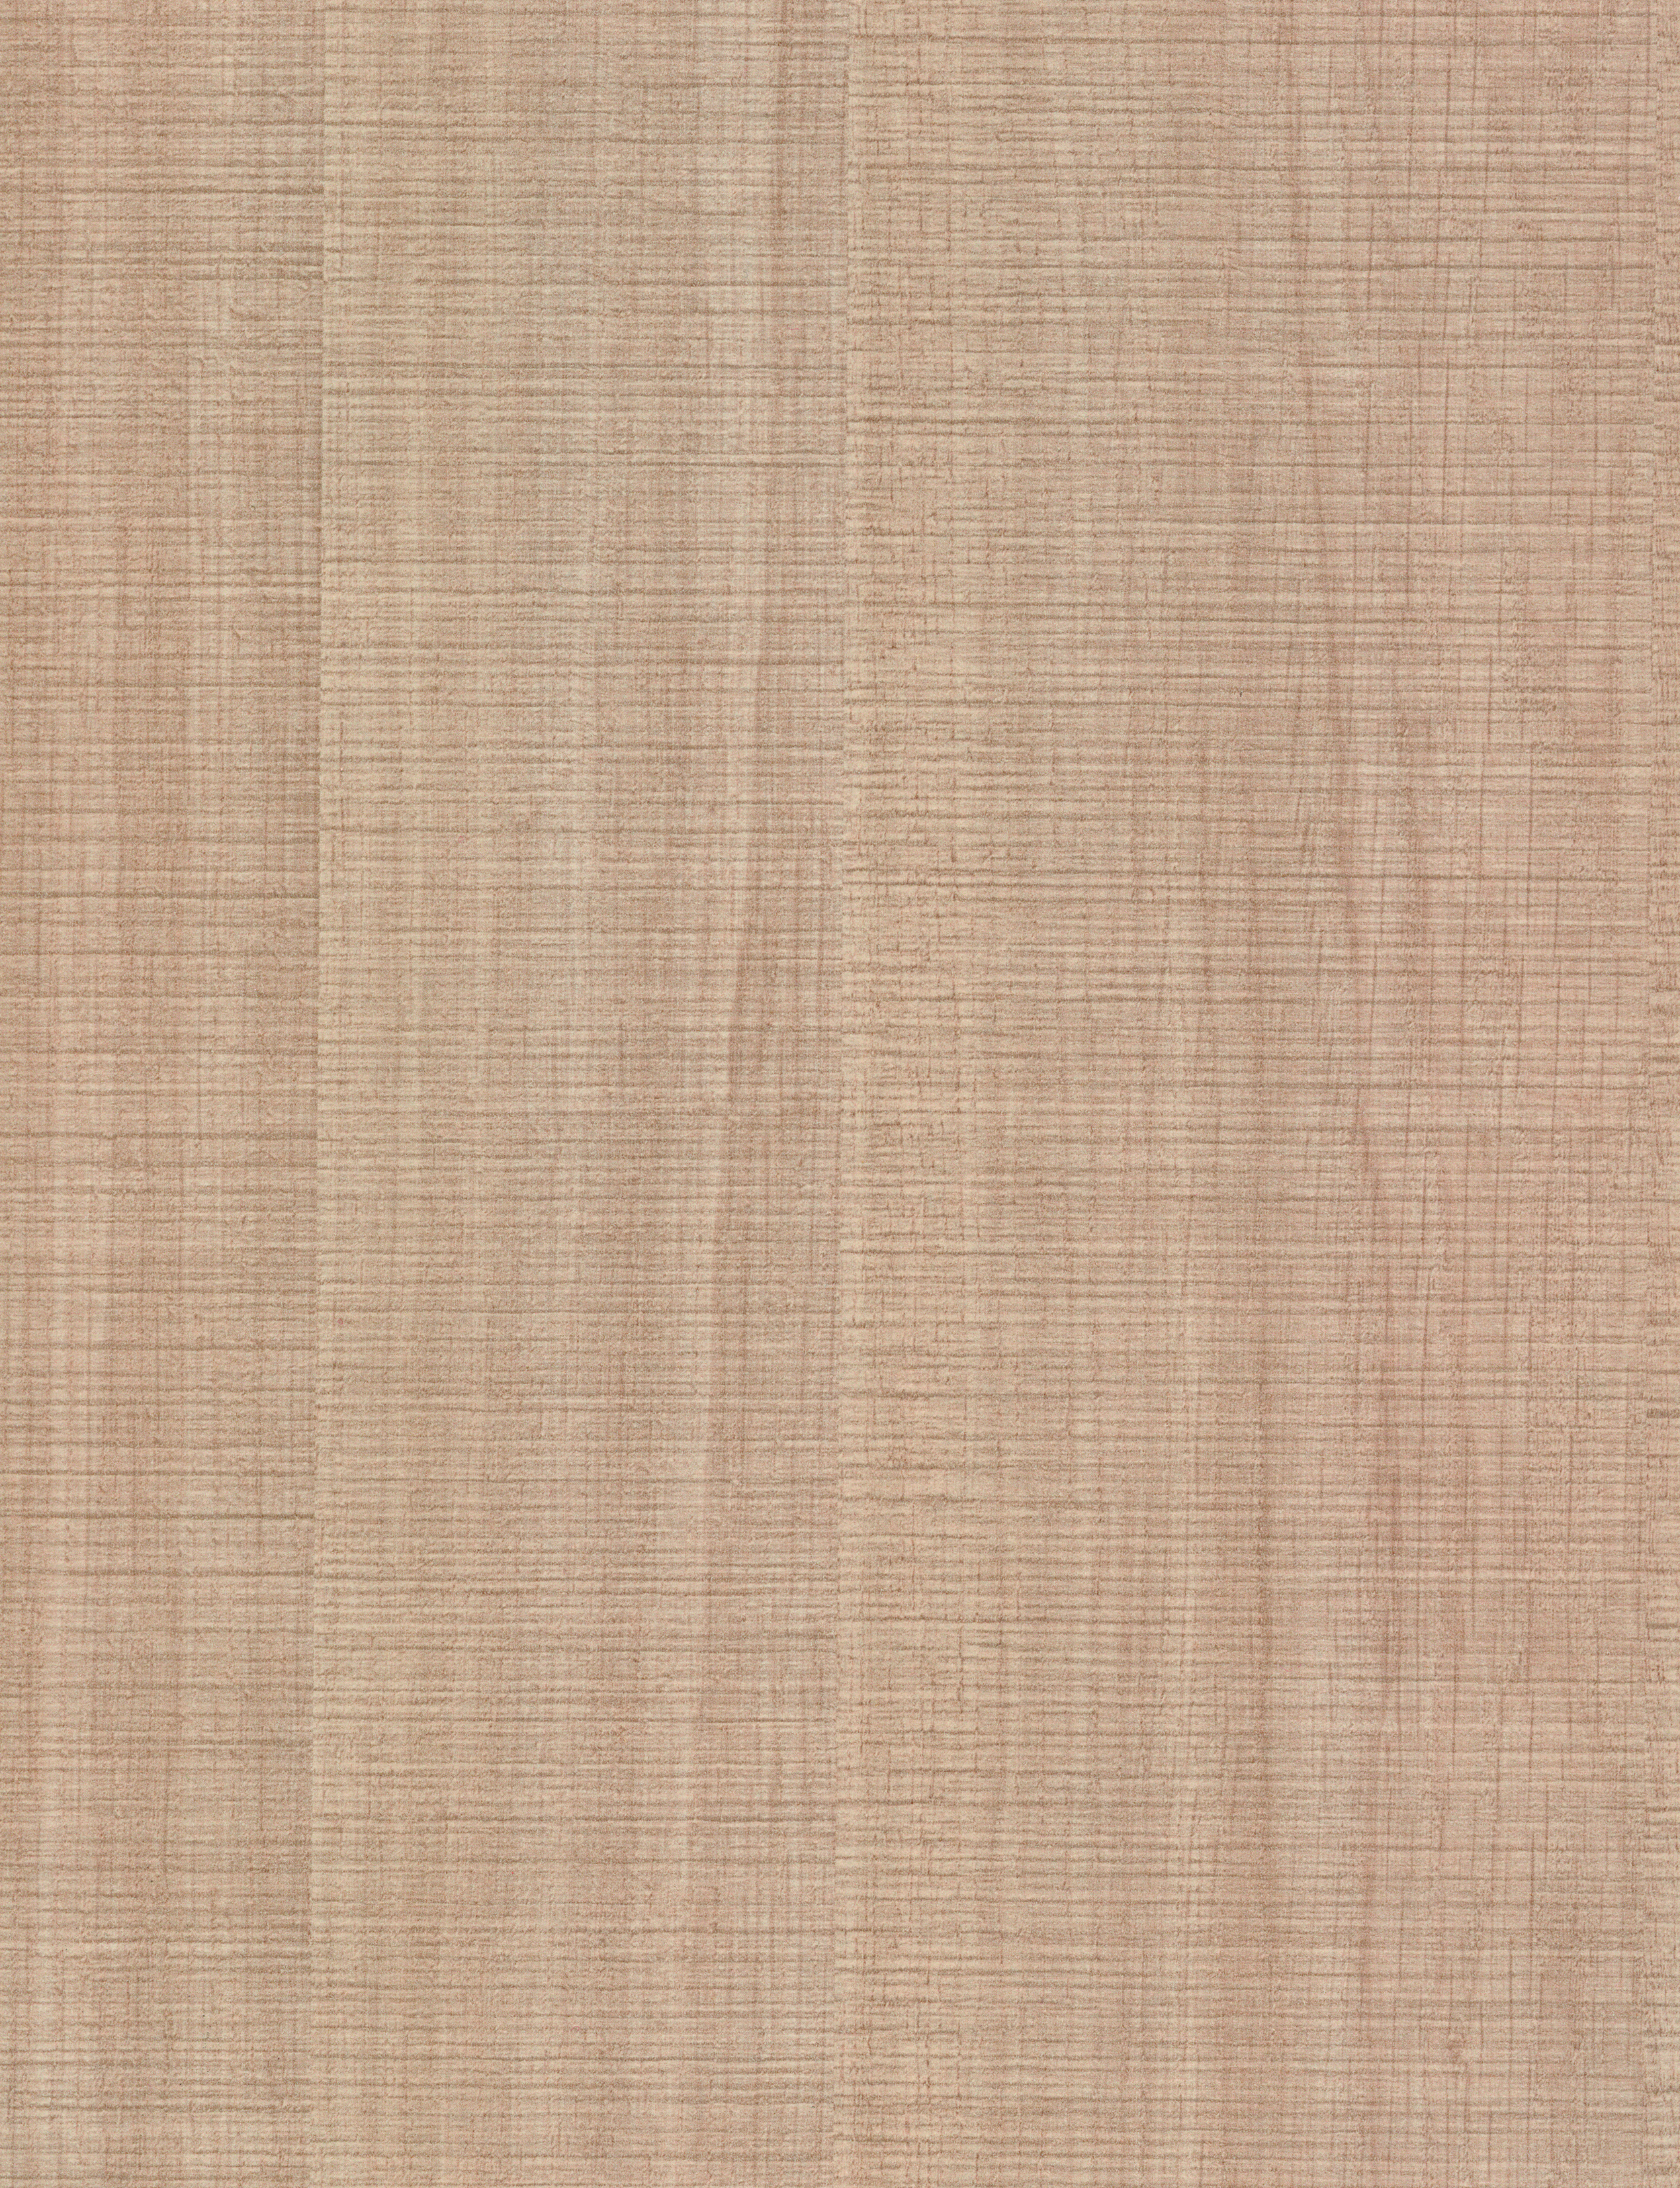 AAM1136 Cross Sawn Honey Oak